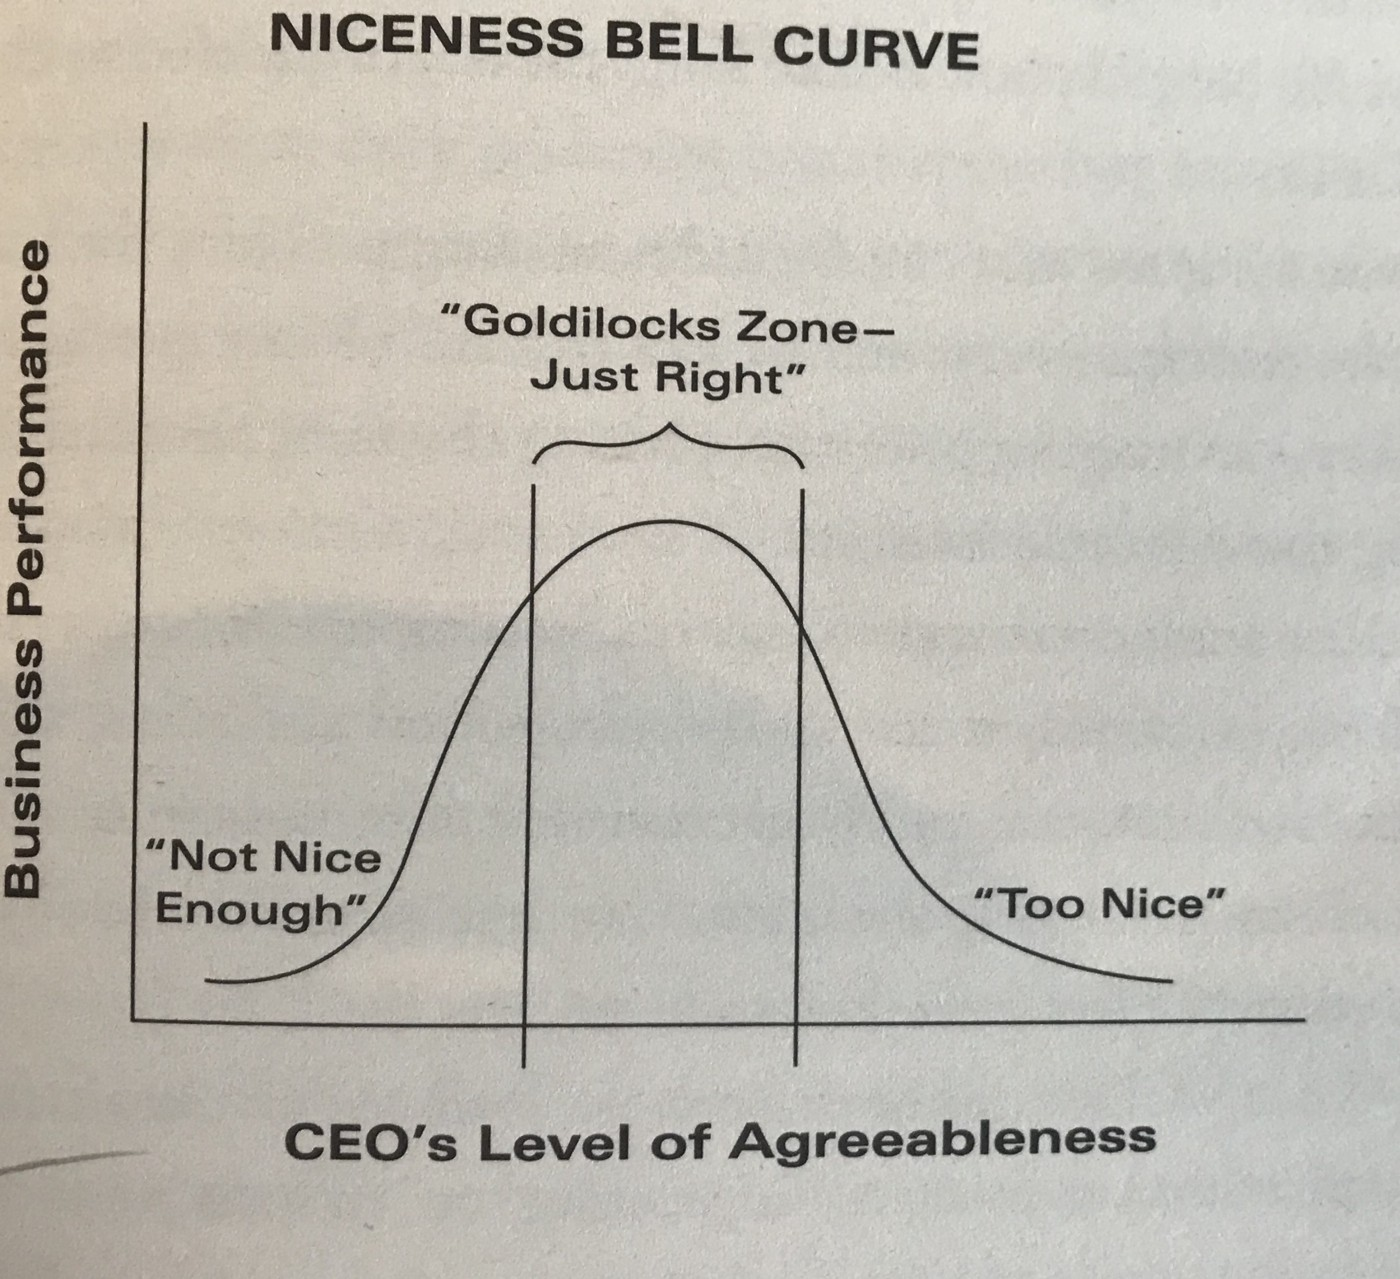 Niceness Bell Curve